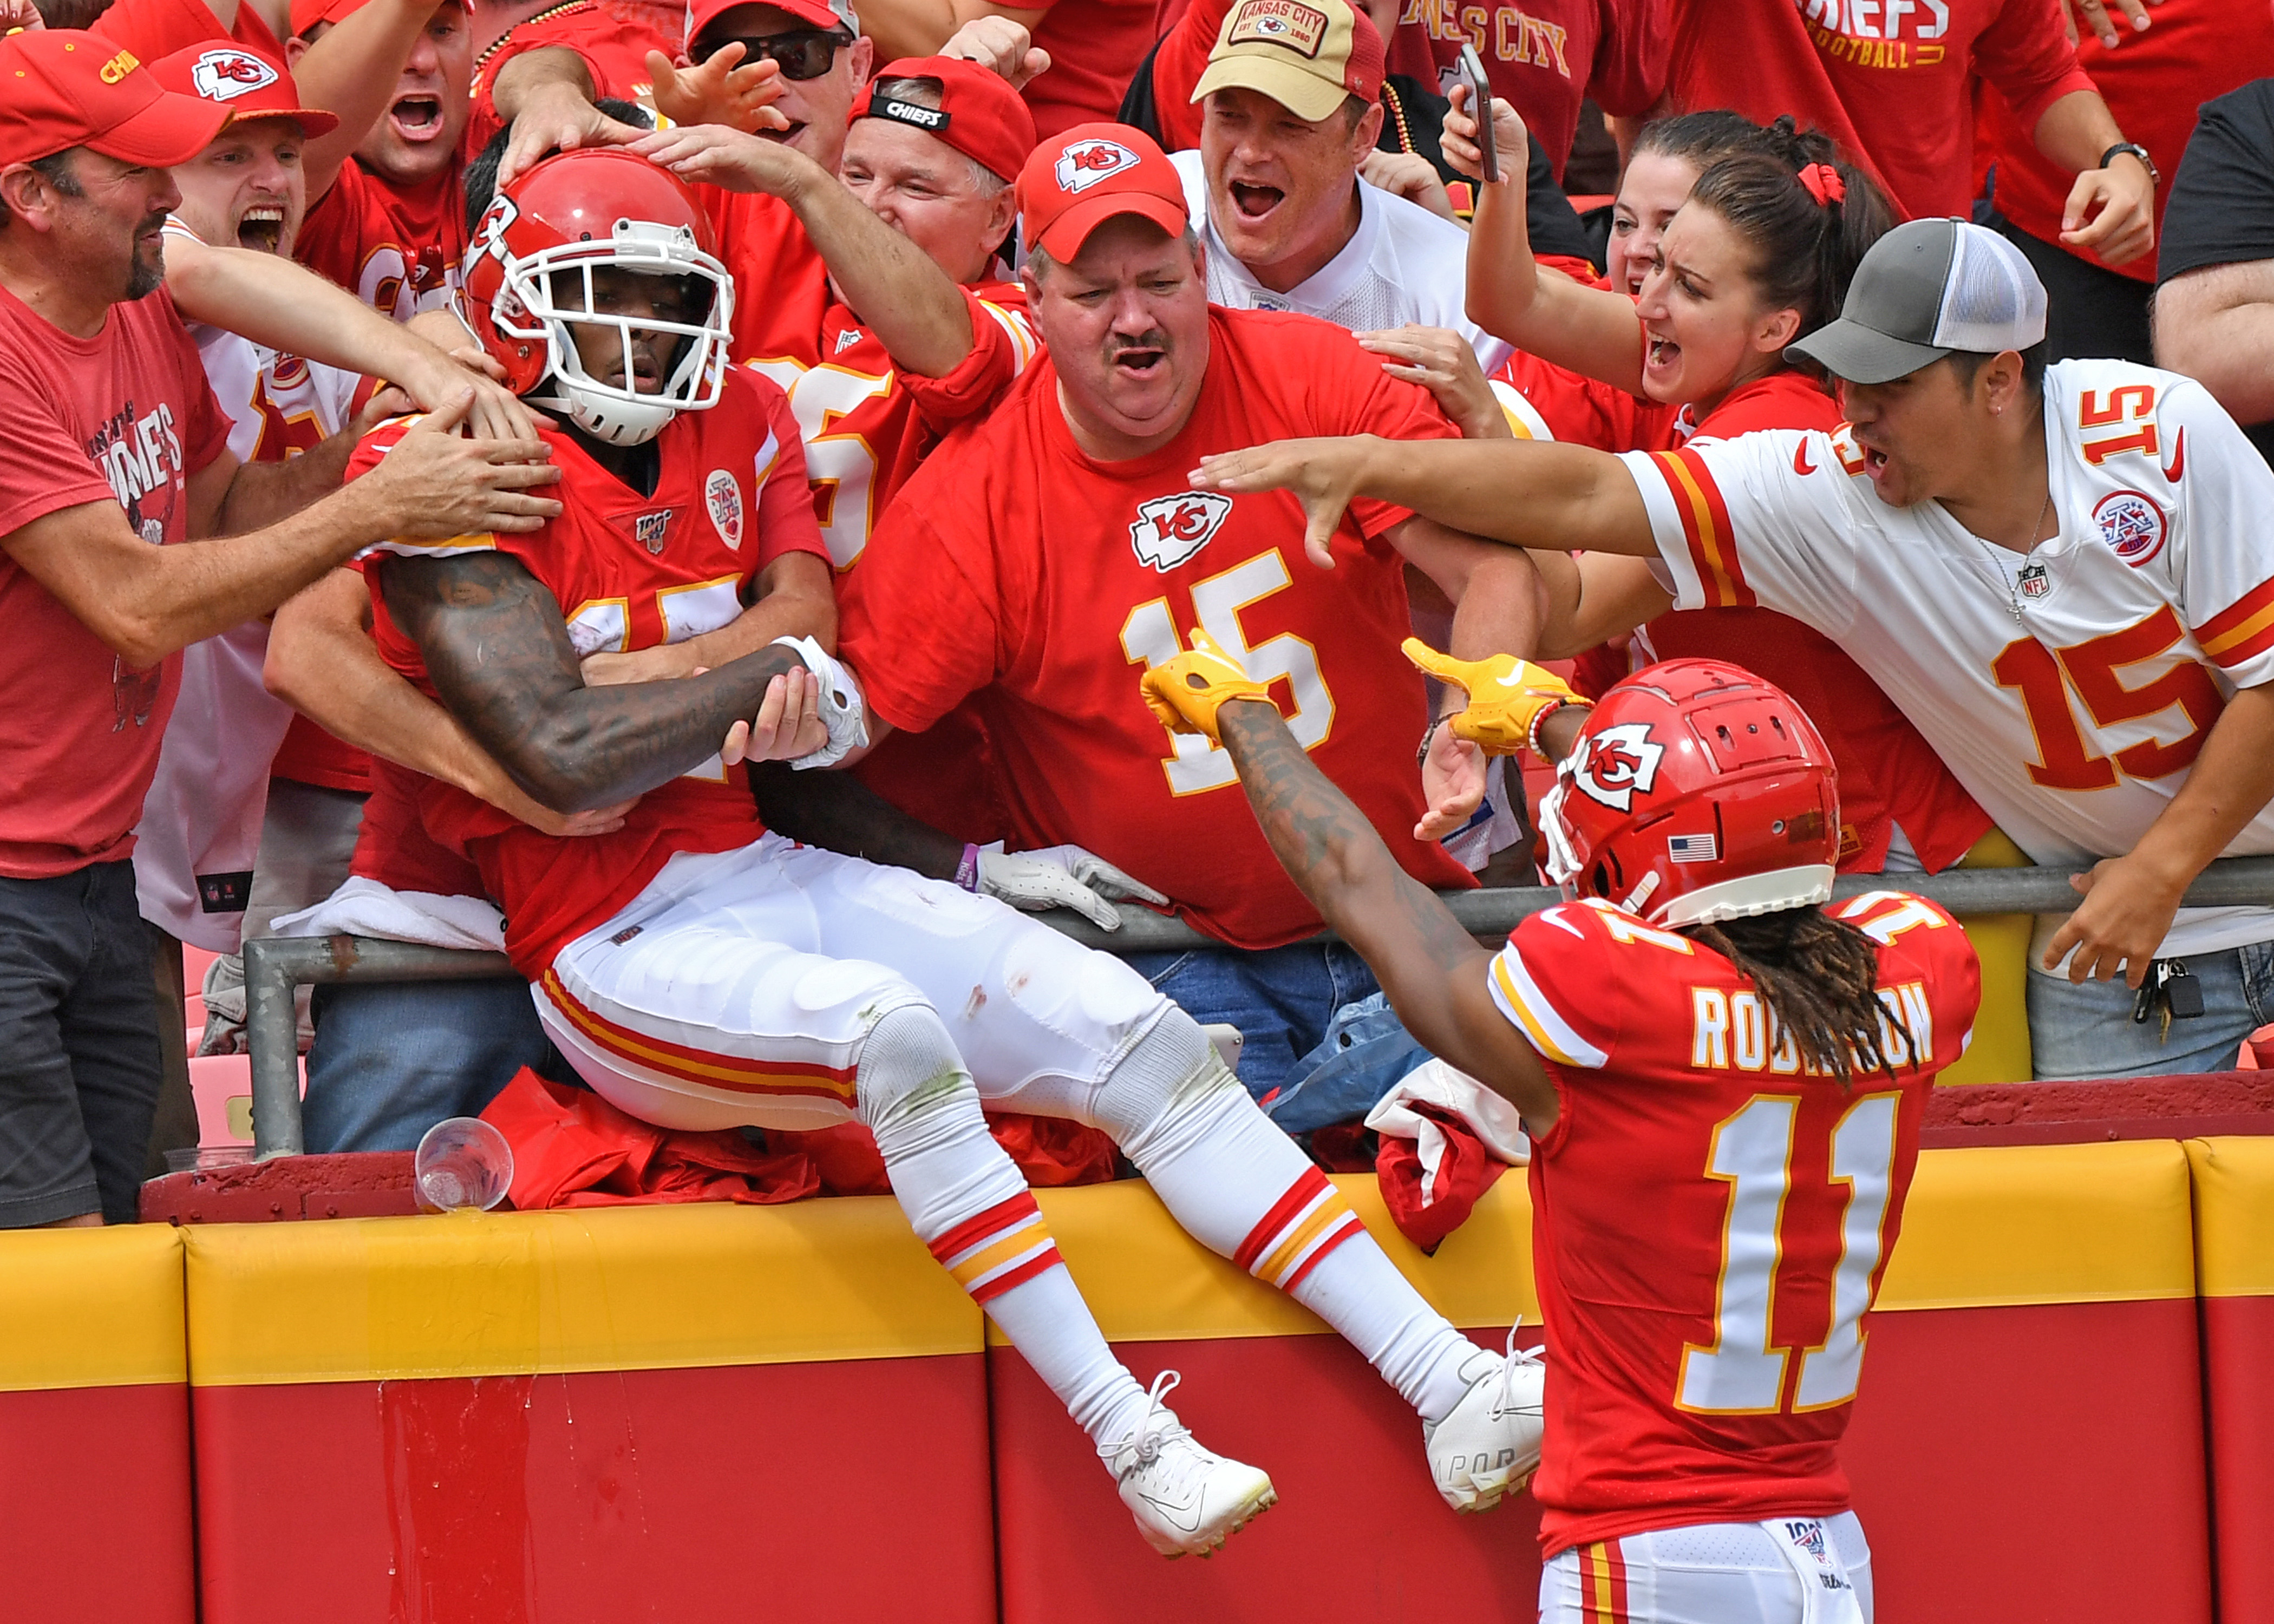 Wide receiver Mecole Hardman #17 of the Kansas City Chiefs leaps into the stands after scoring a touchdown against the Baltimore Ravens during the first half at Arrowhead Stadium on September 22, 2019 in Kansas City, Missouri.